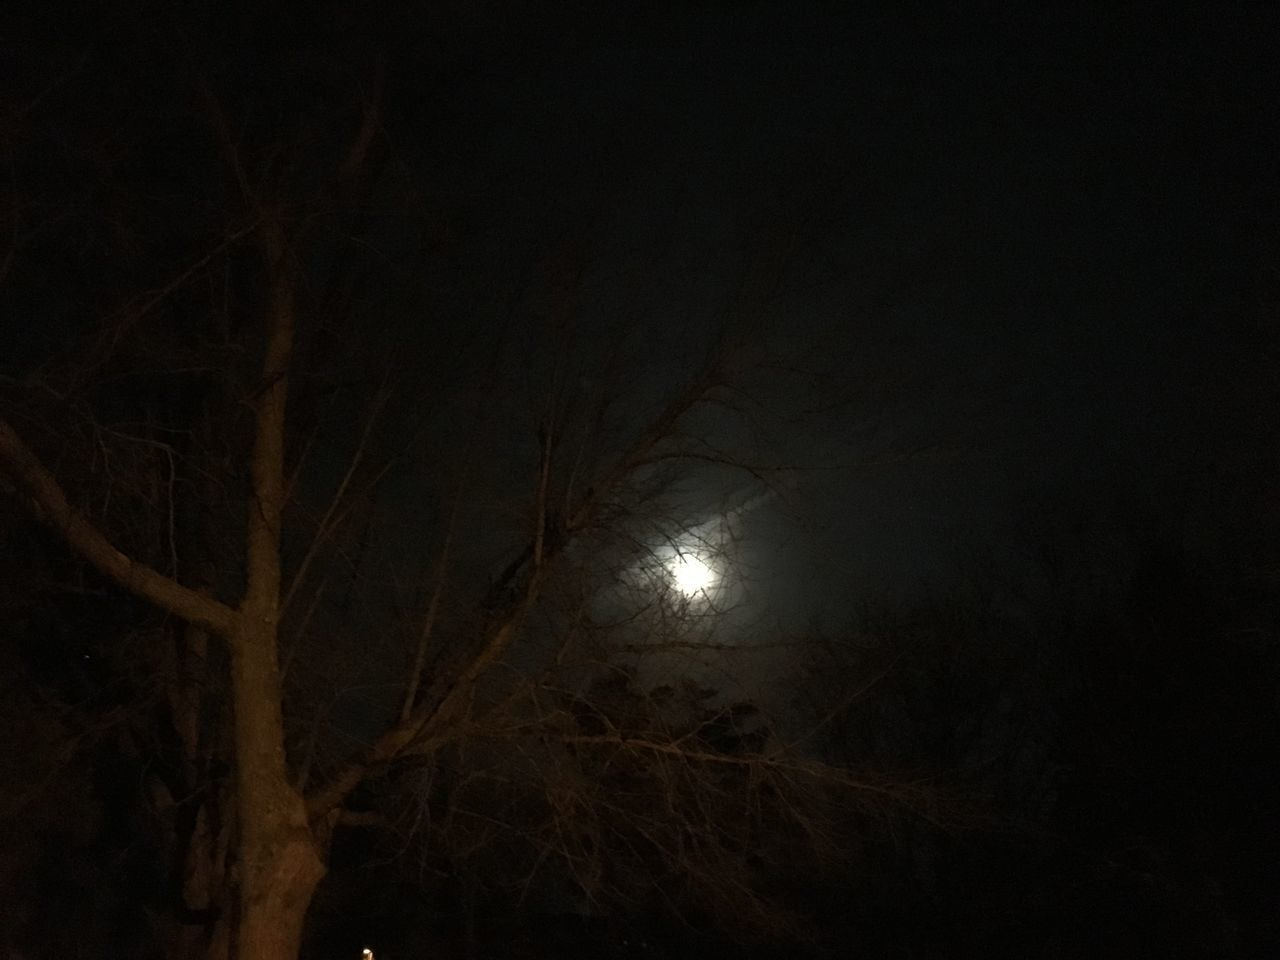 night, moon, nature, illuminated, low angle view, tranquility, beauty in nature, moonlight, no people, outdoors, branch, tree, astronomy, sky